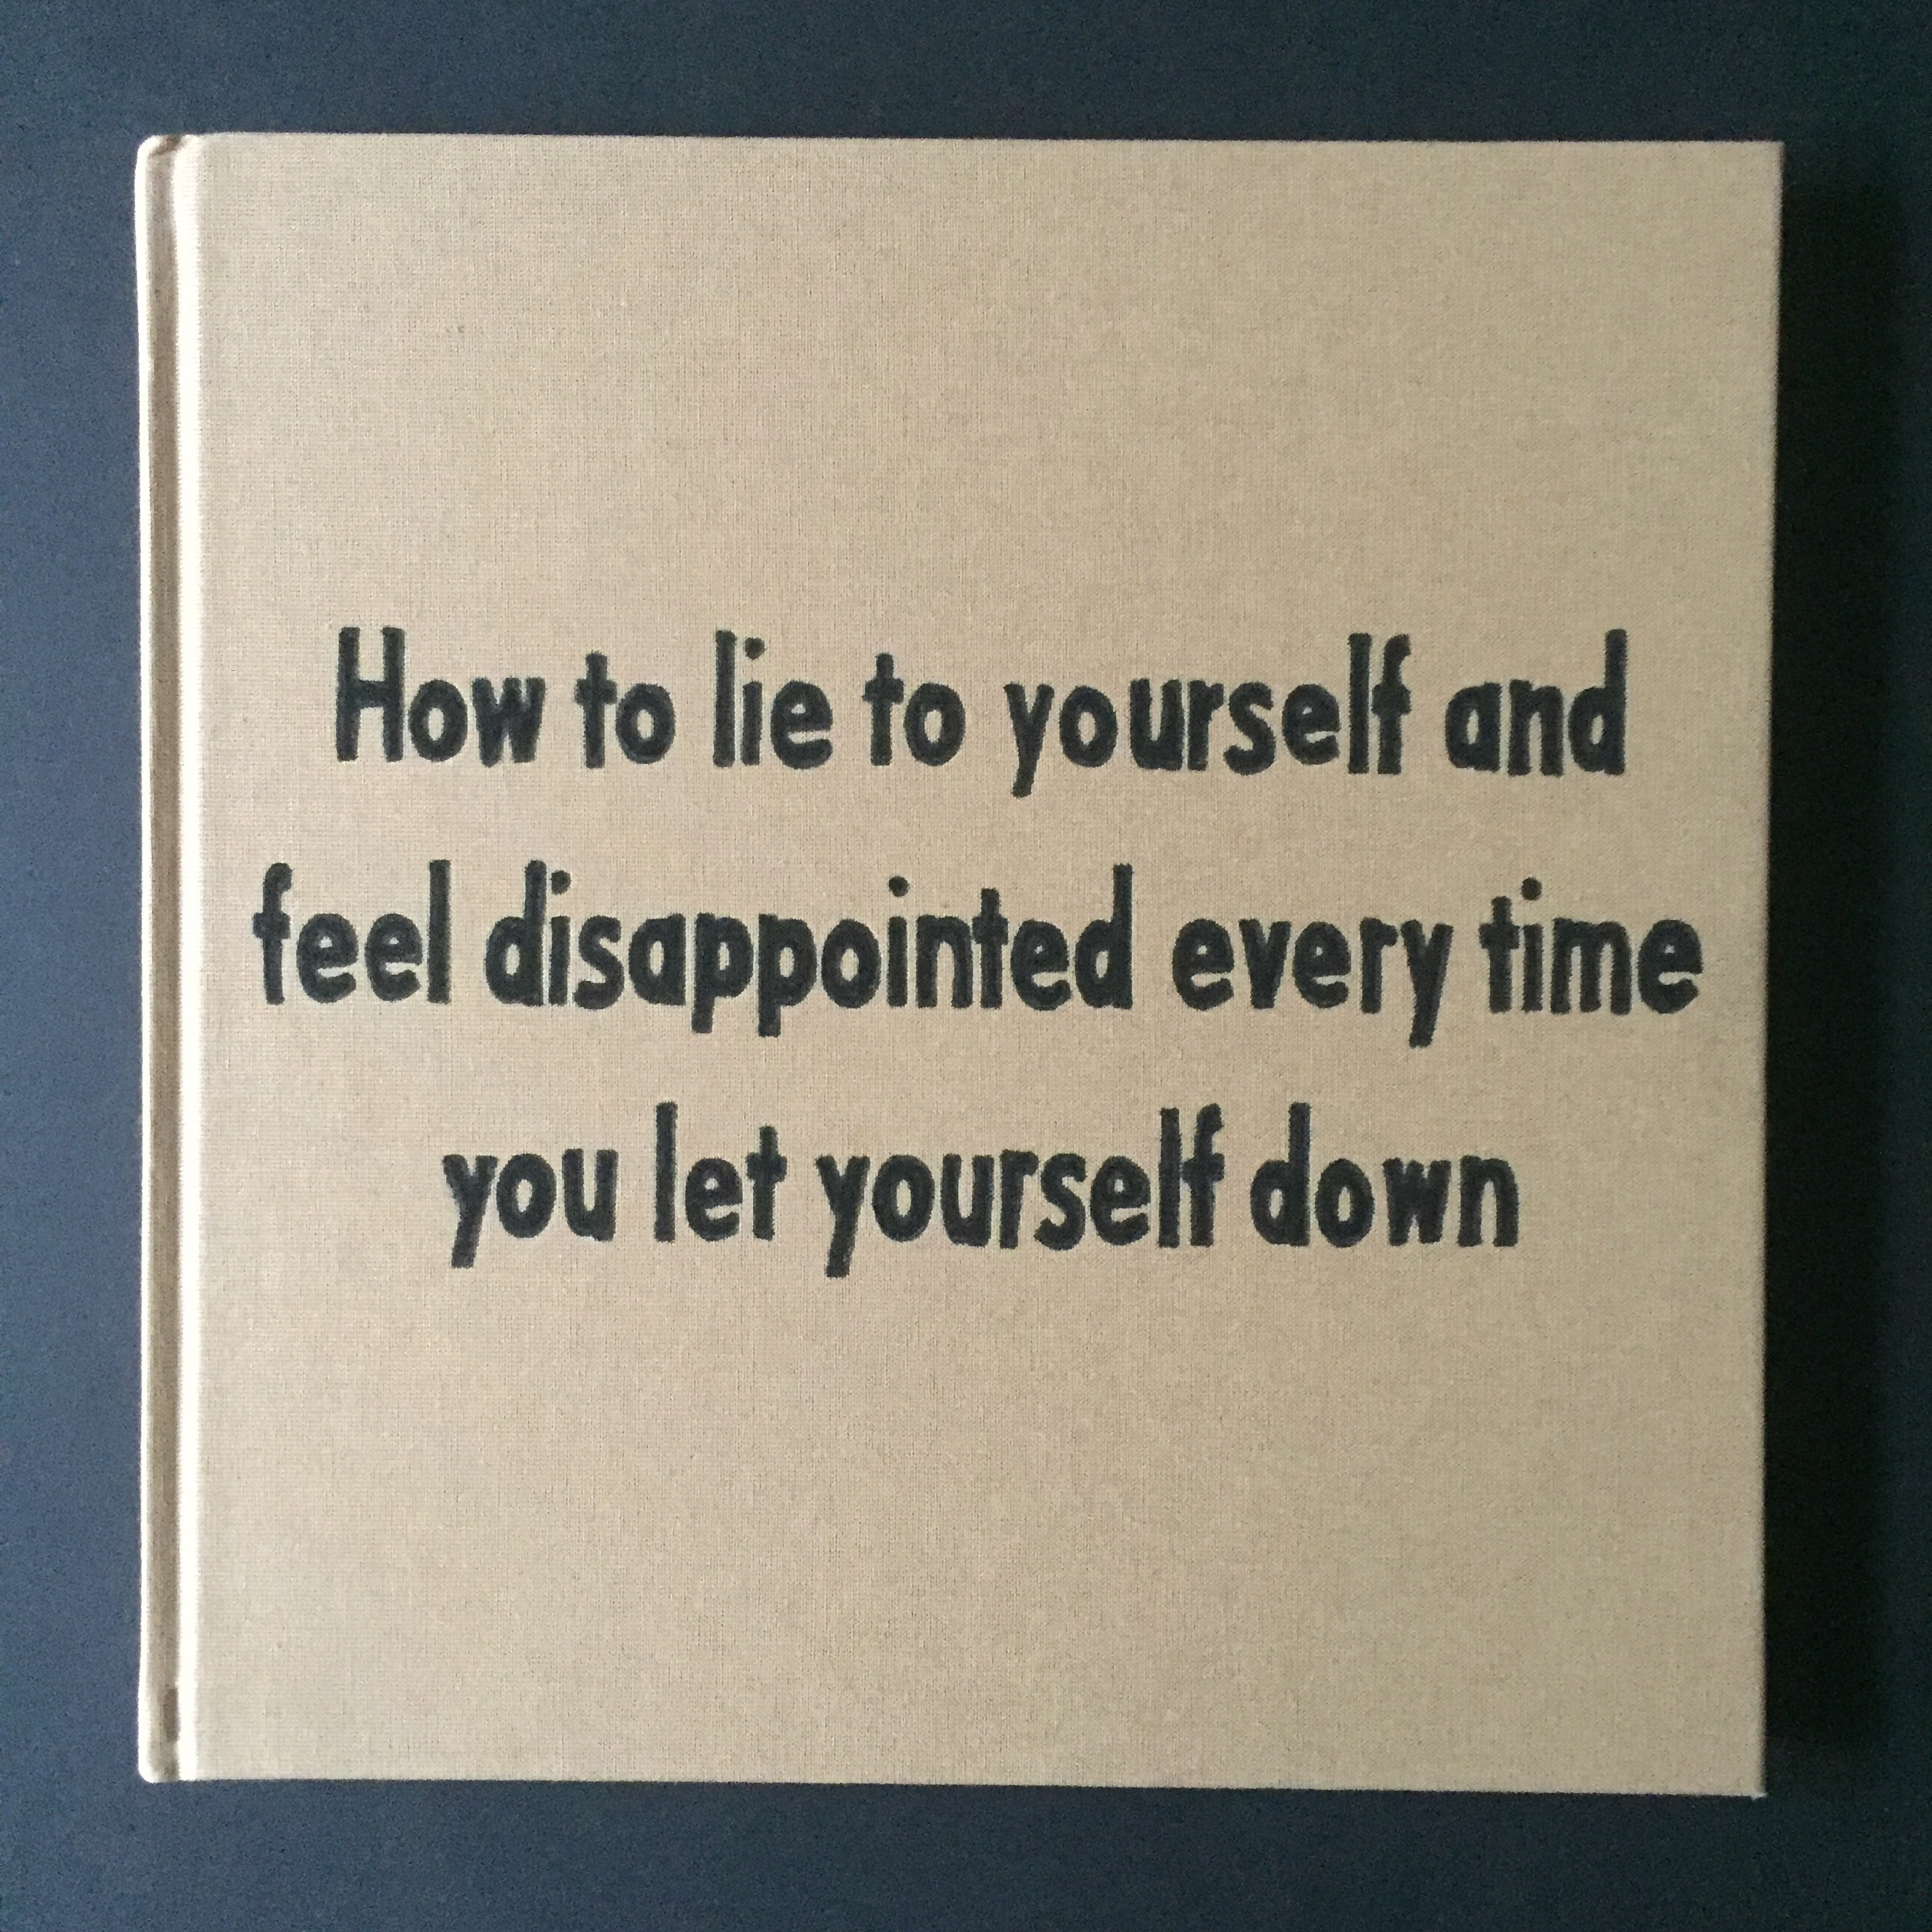 Let Yourself Down